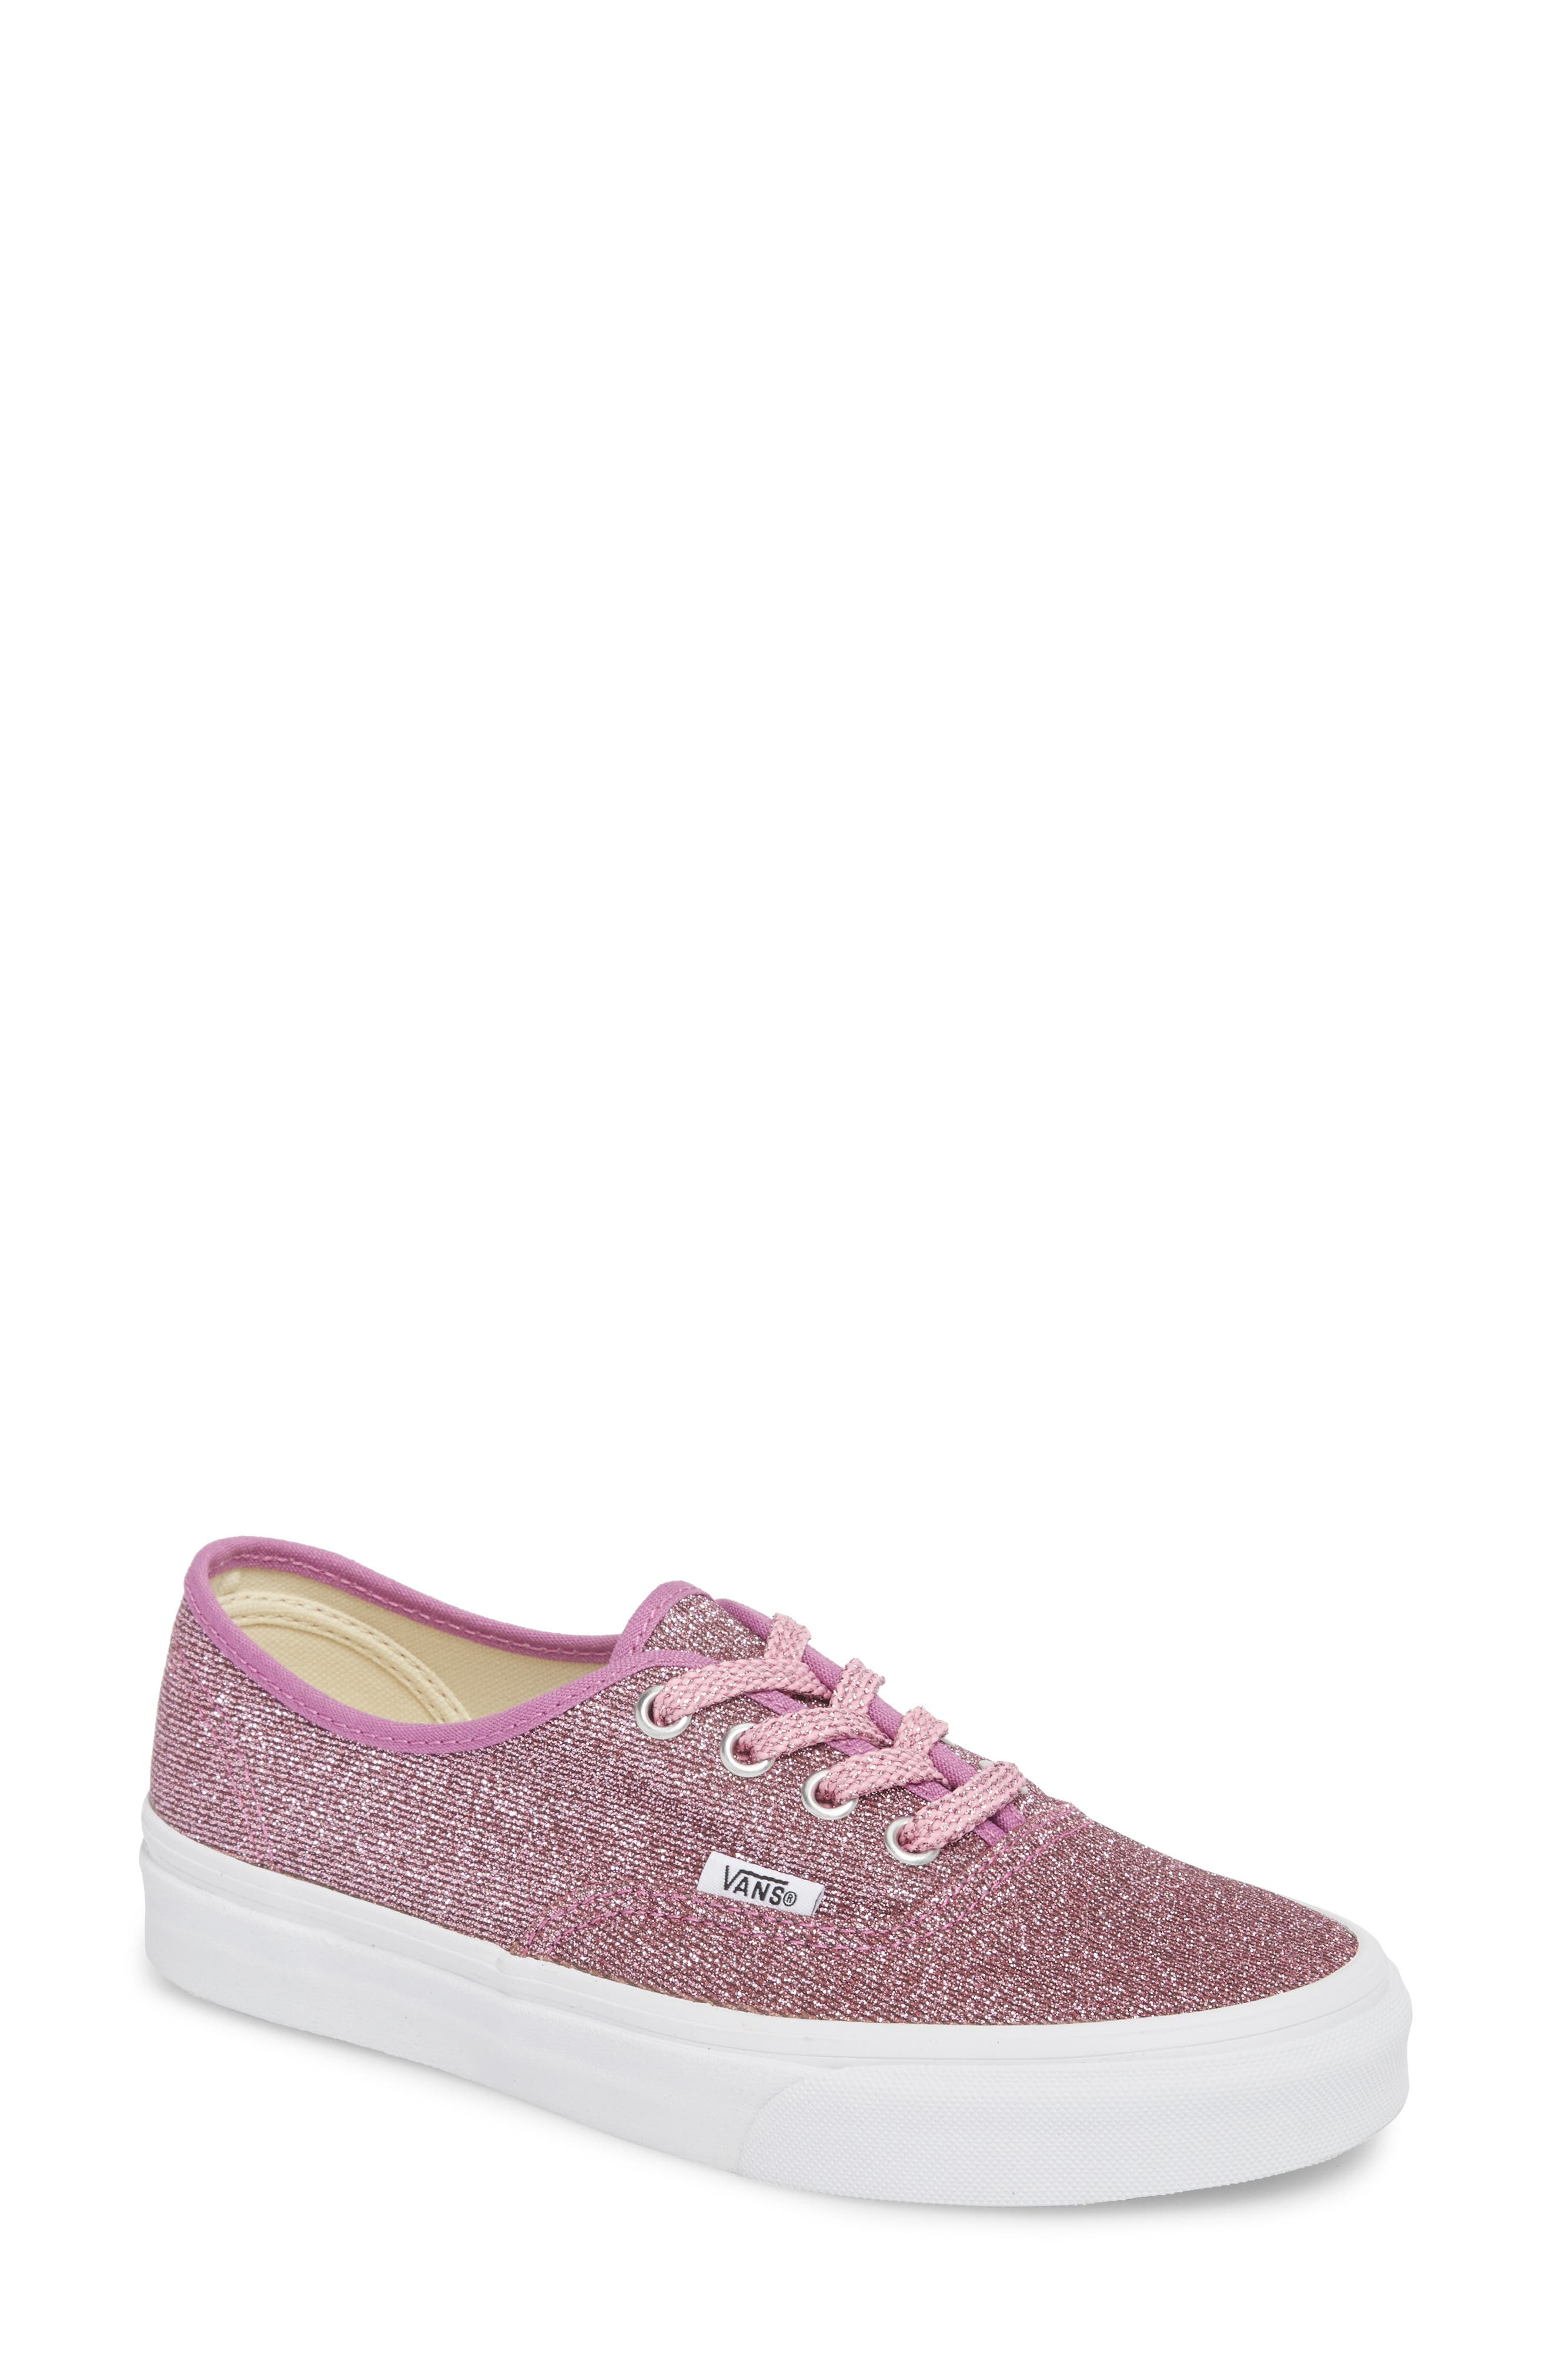 UA Authentic Lurex Sneaker,                             Main thumbnail 1, color,                             Pink/ True White Glitter